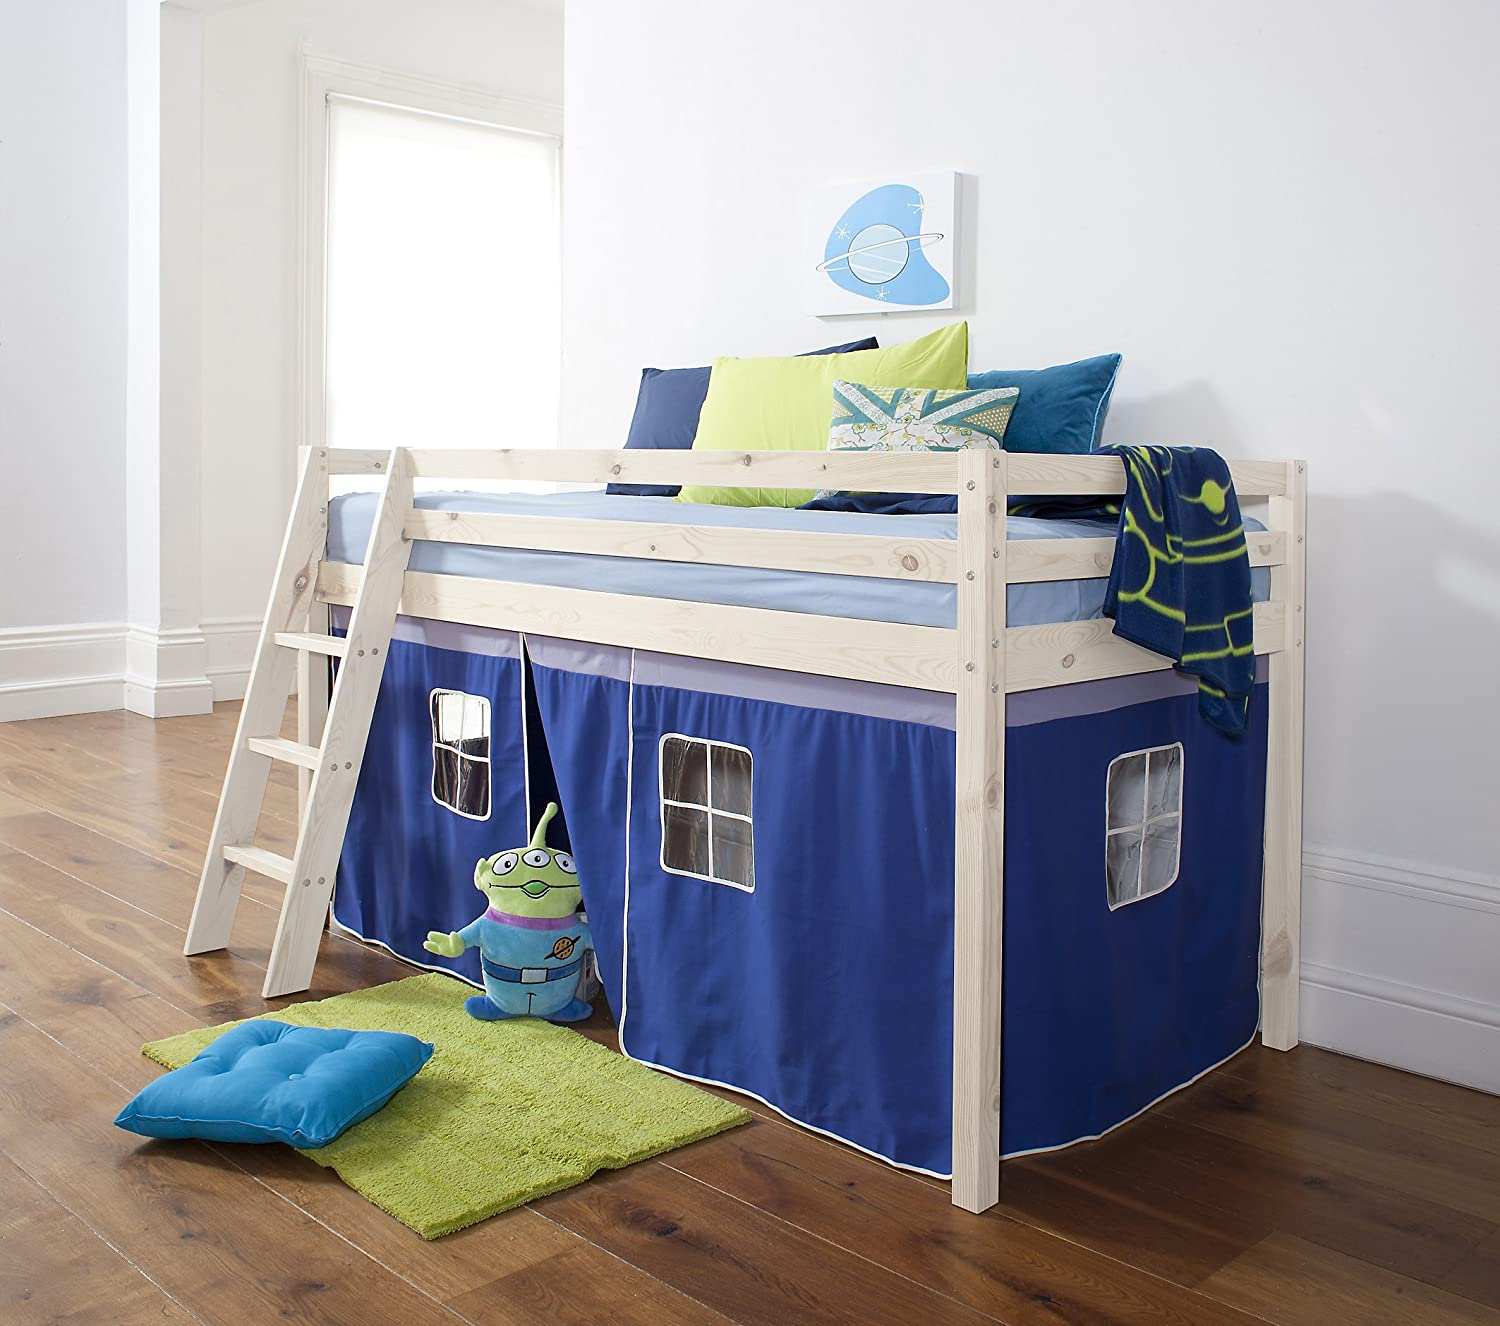 Cabin Bed Tent for Midsleeper Bed in Choice of Colours (Blue) Amazon.co.uk Kitchen u0026 Home & Cabin Bed Tent for Midsleeper Bed in Choice of Colours (Blue ...